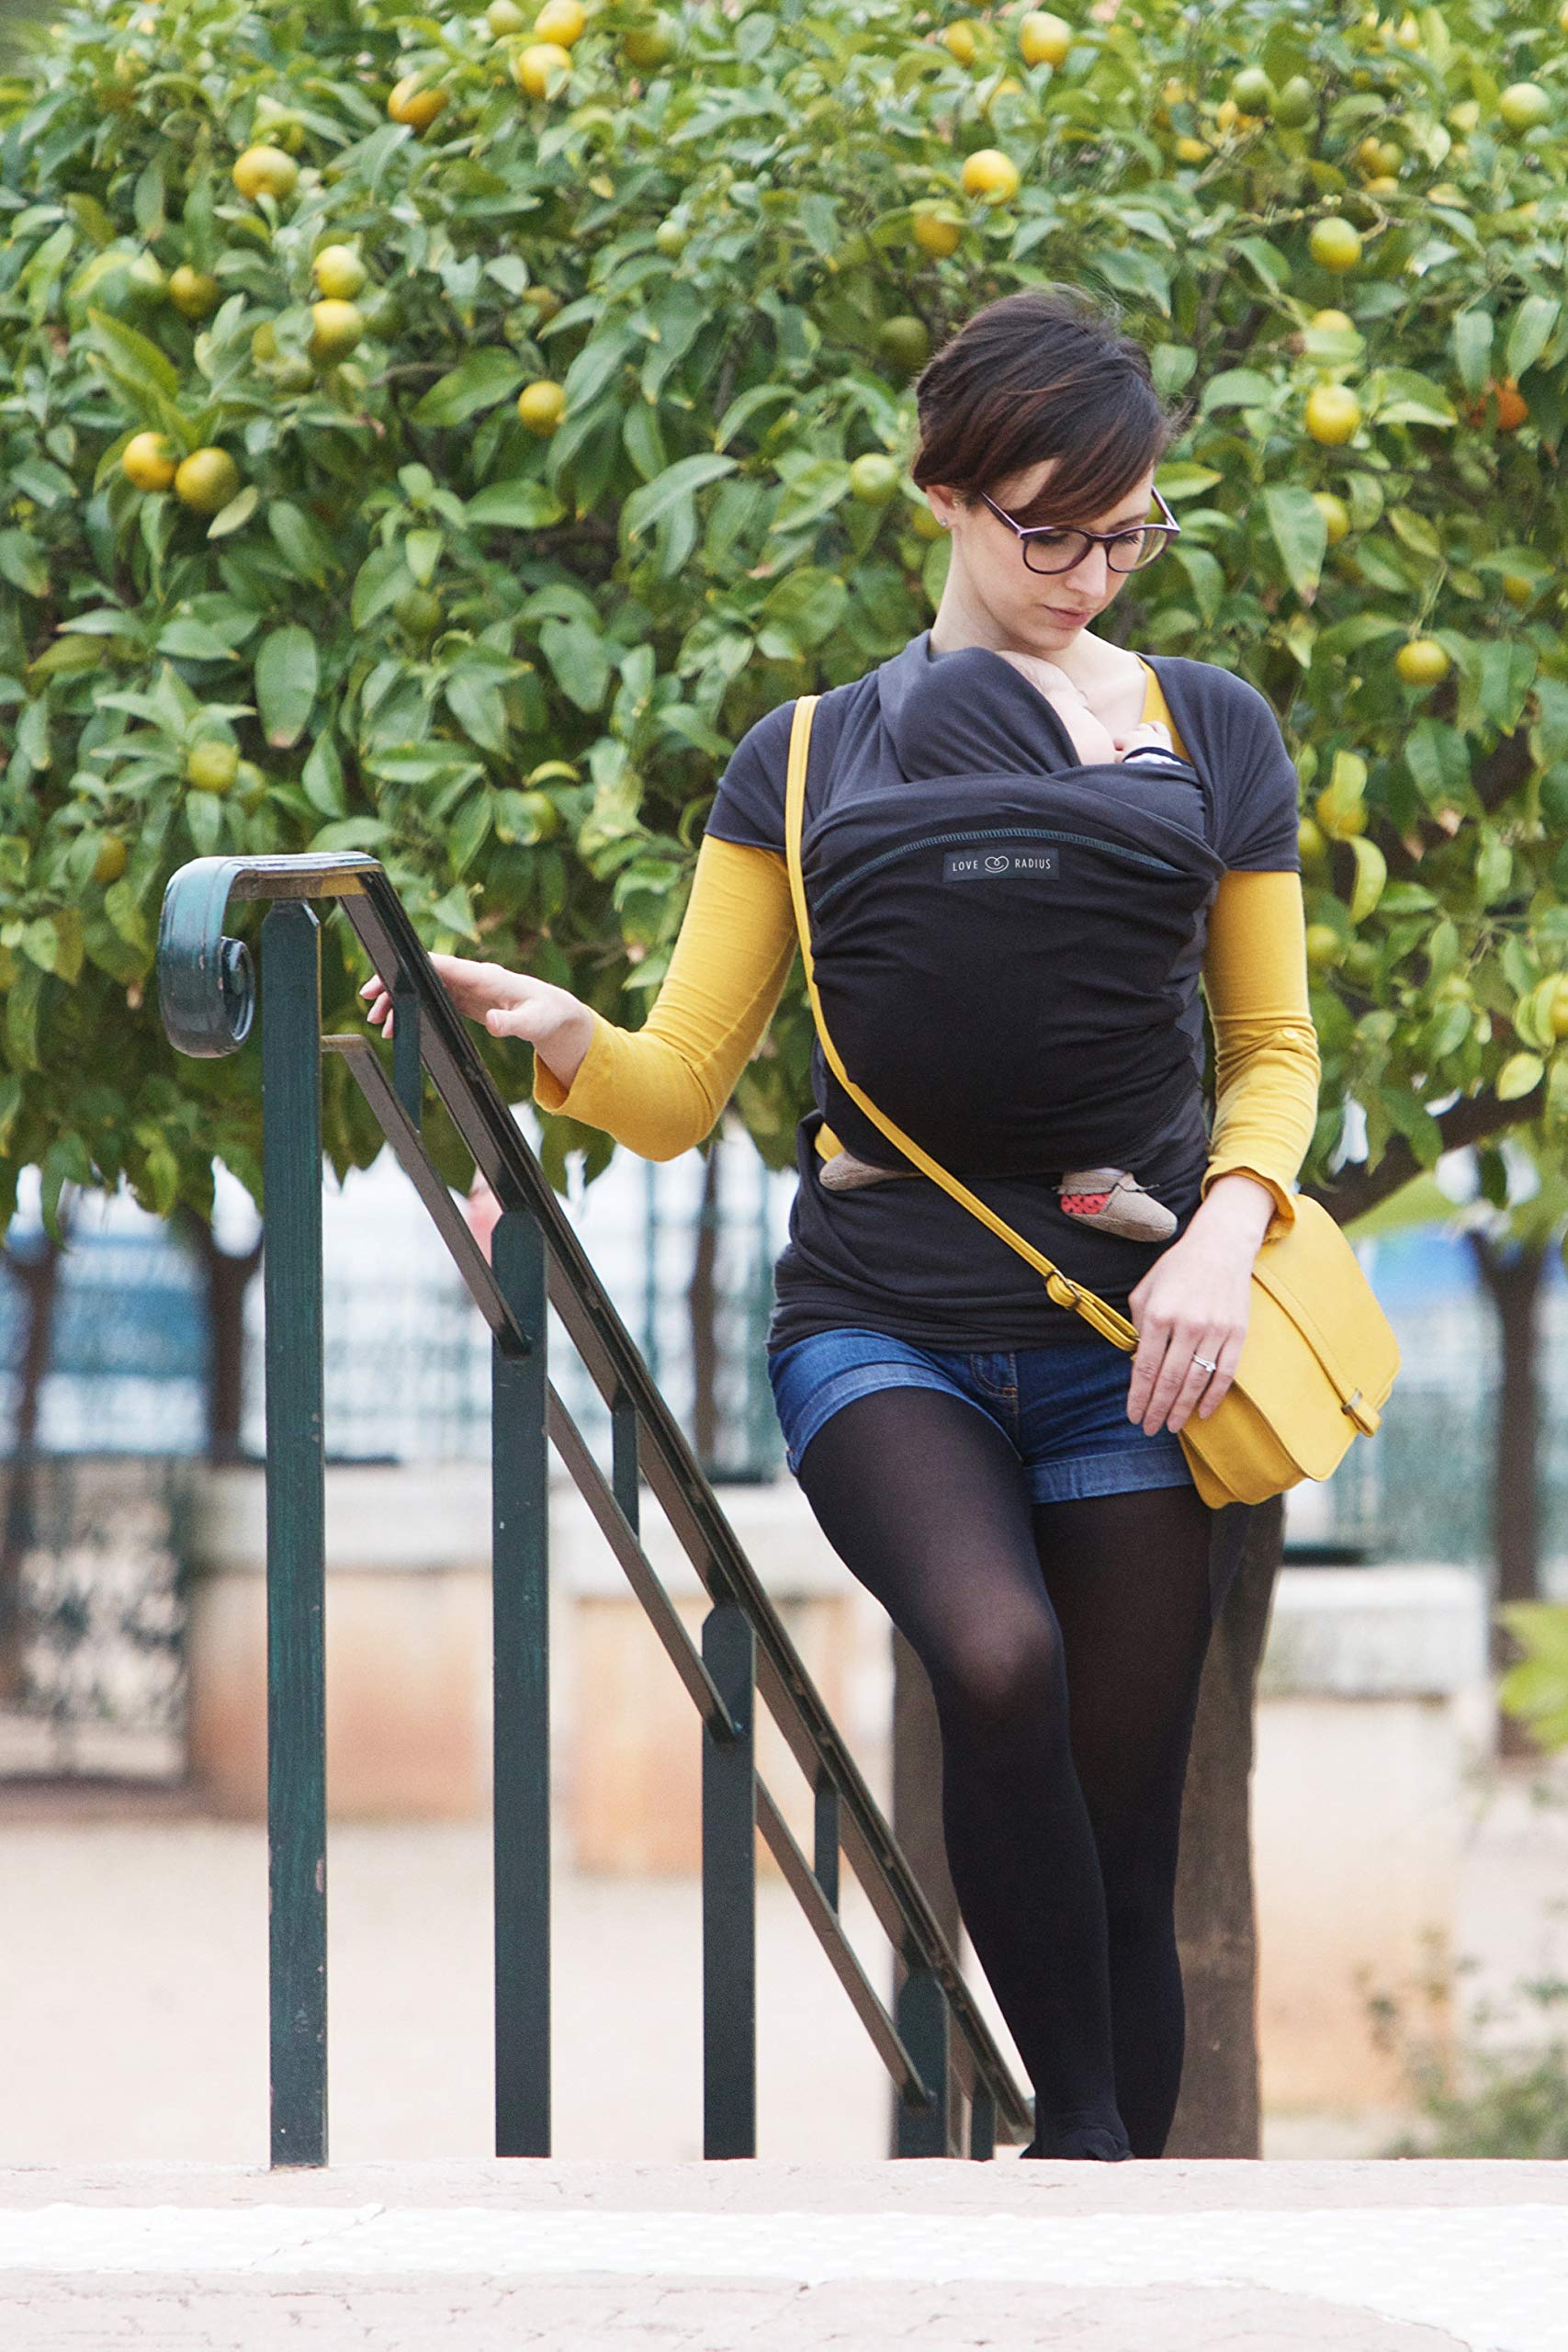 Je Porte Mon Bébé L'Originale Baby Sling Je Porte Mon Bébé High Quality Elastic Baby Carrier Dense, elastic and breathable material Great support, fits your baby's body like a second skin. 23